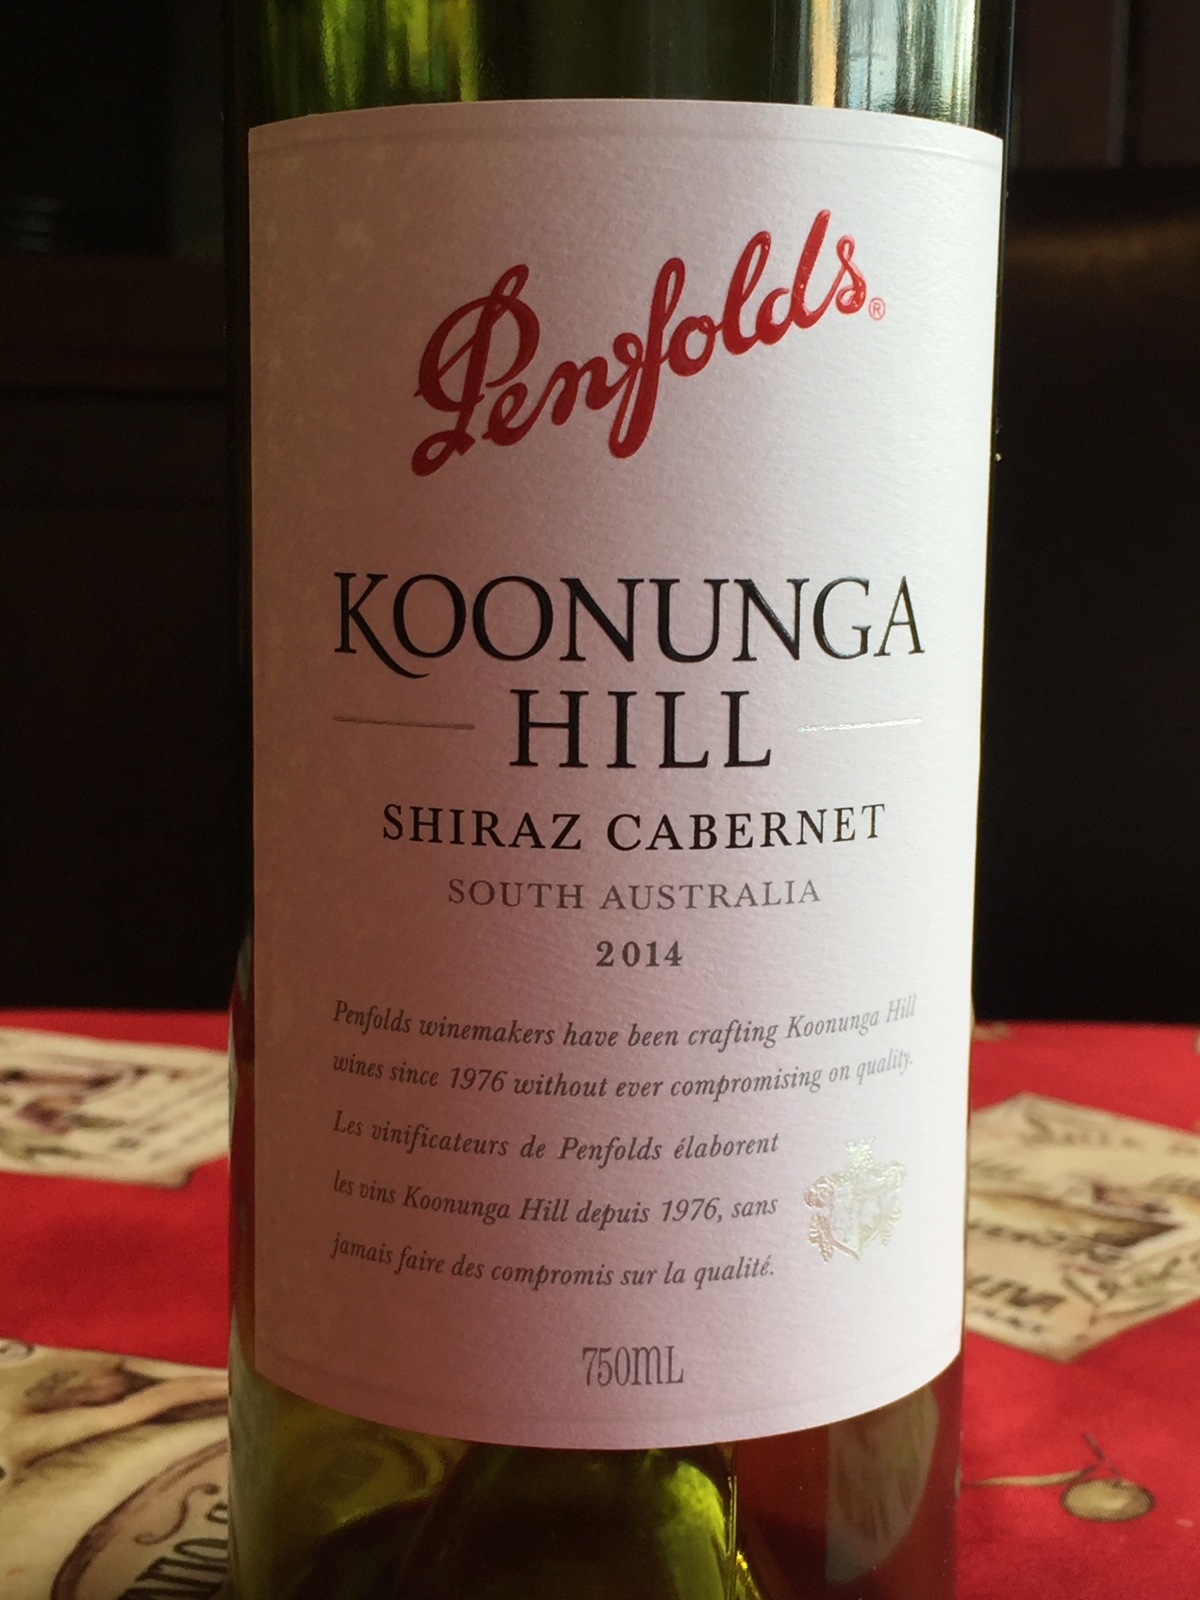 Review: Penfolds 2014 Koonunga Hill Shiraz Cabernet